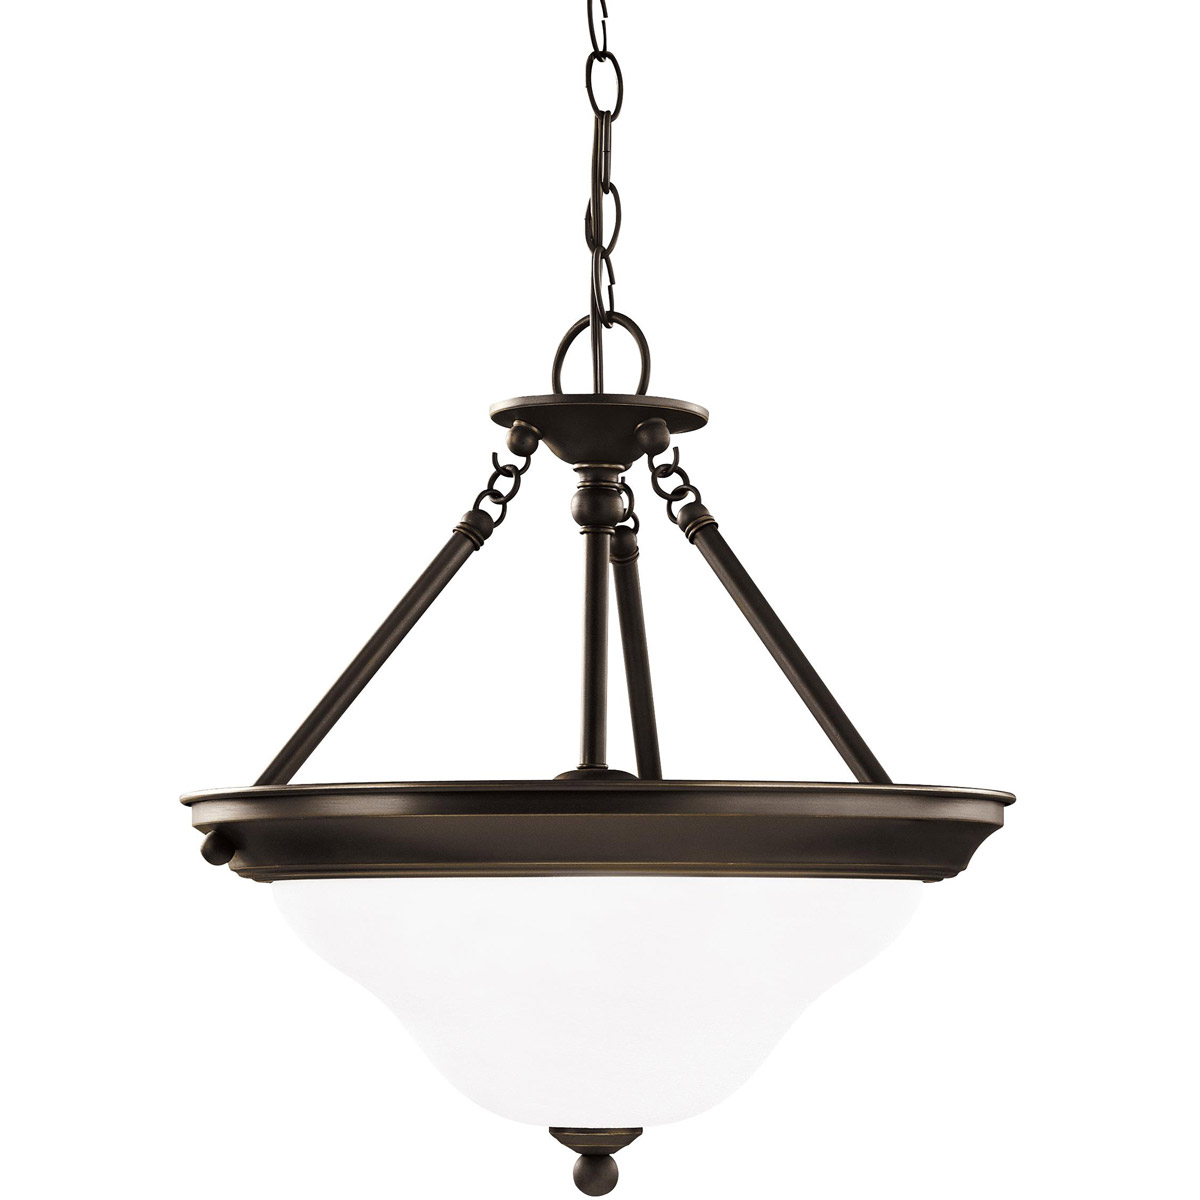 Sea Gull Lighting Sussex 3 Light Pendant in Heirloom Bronze 66062-782